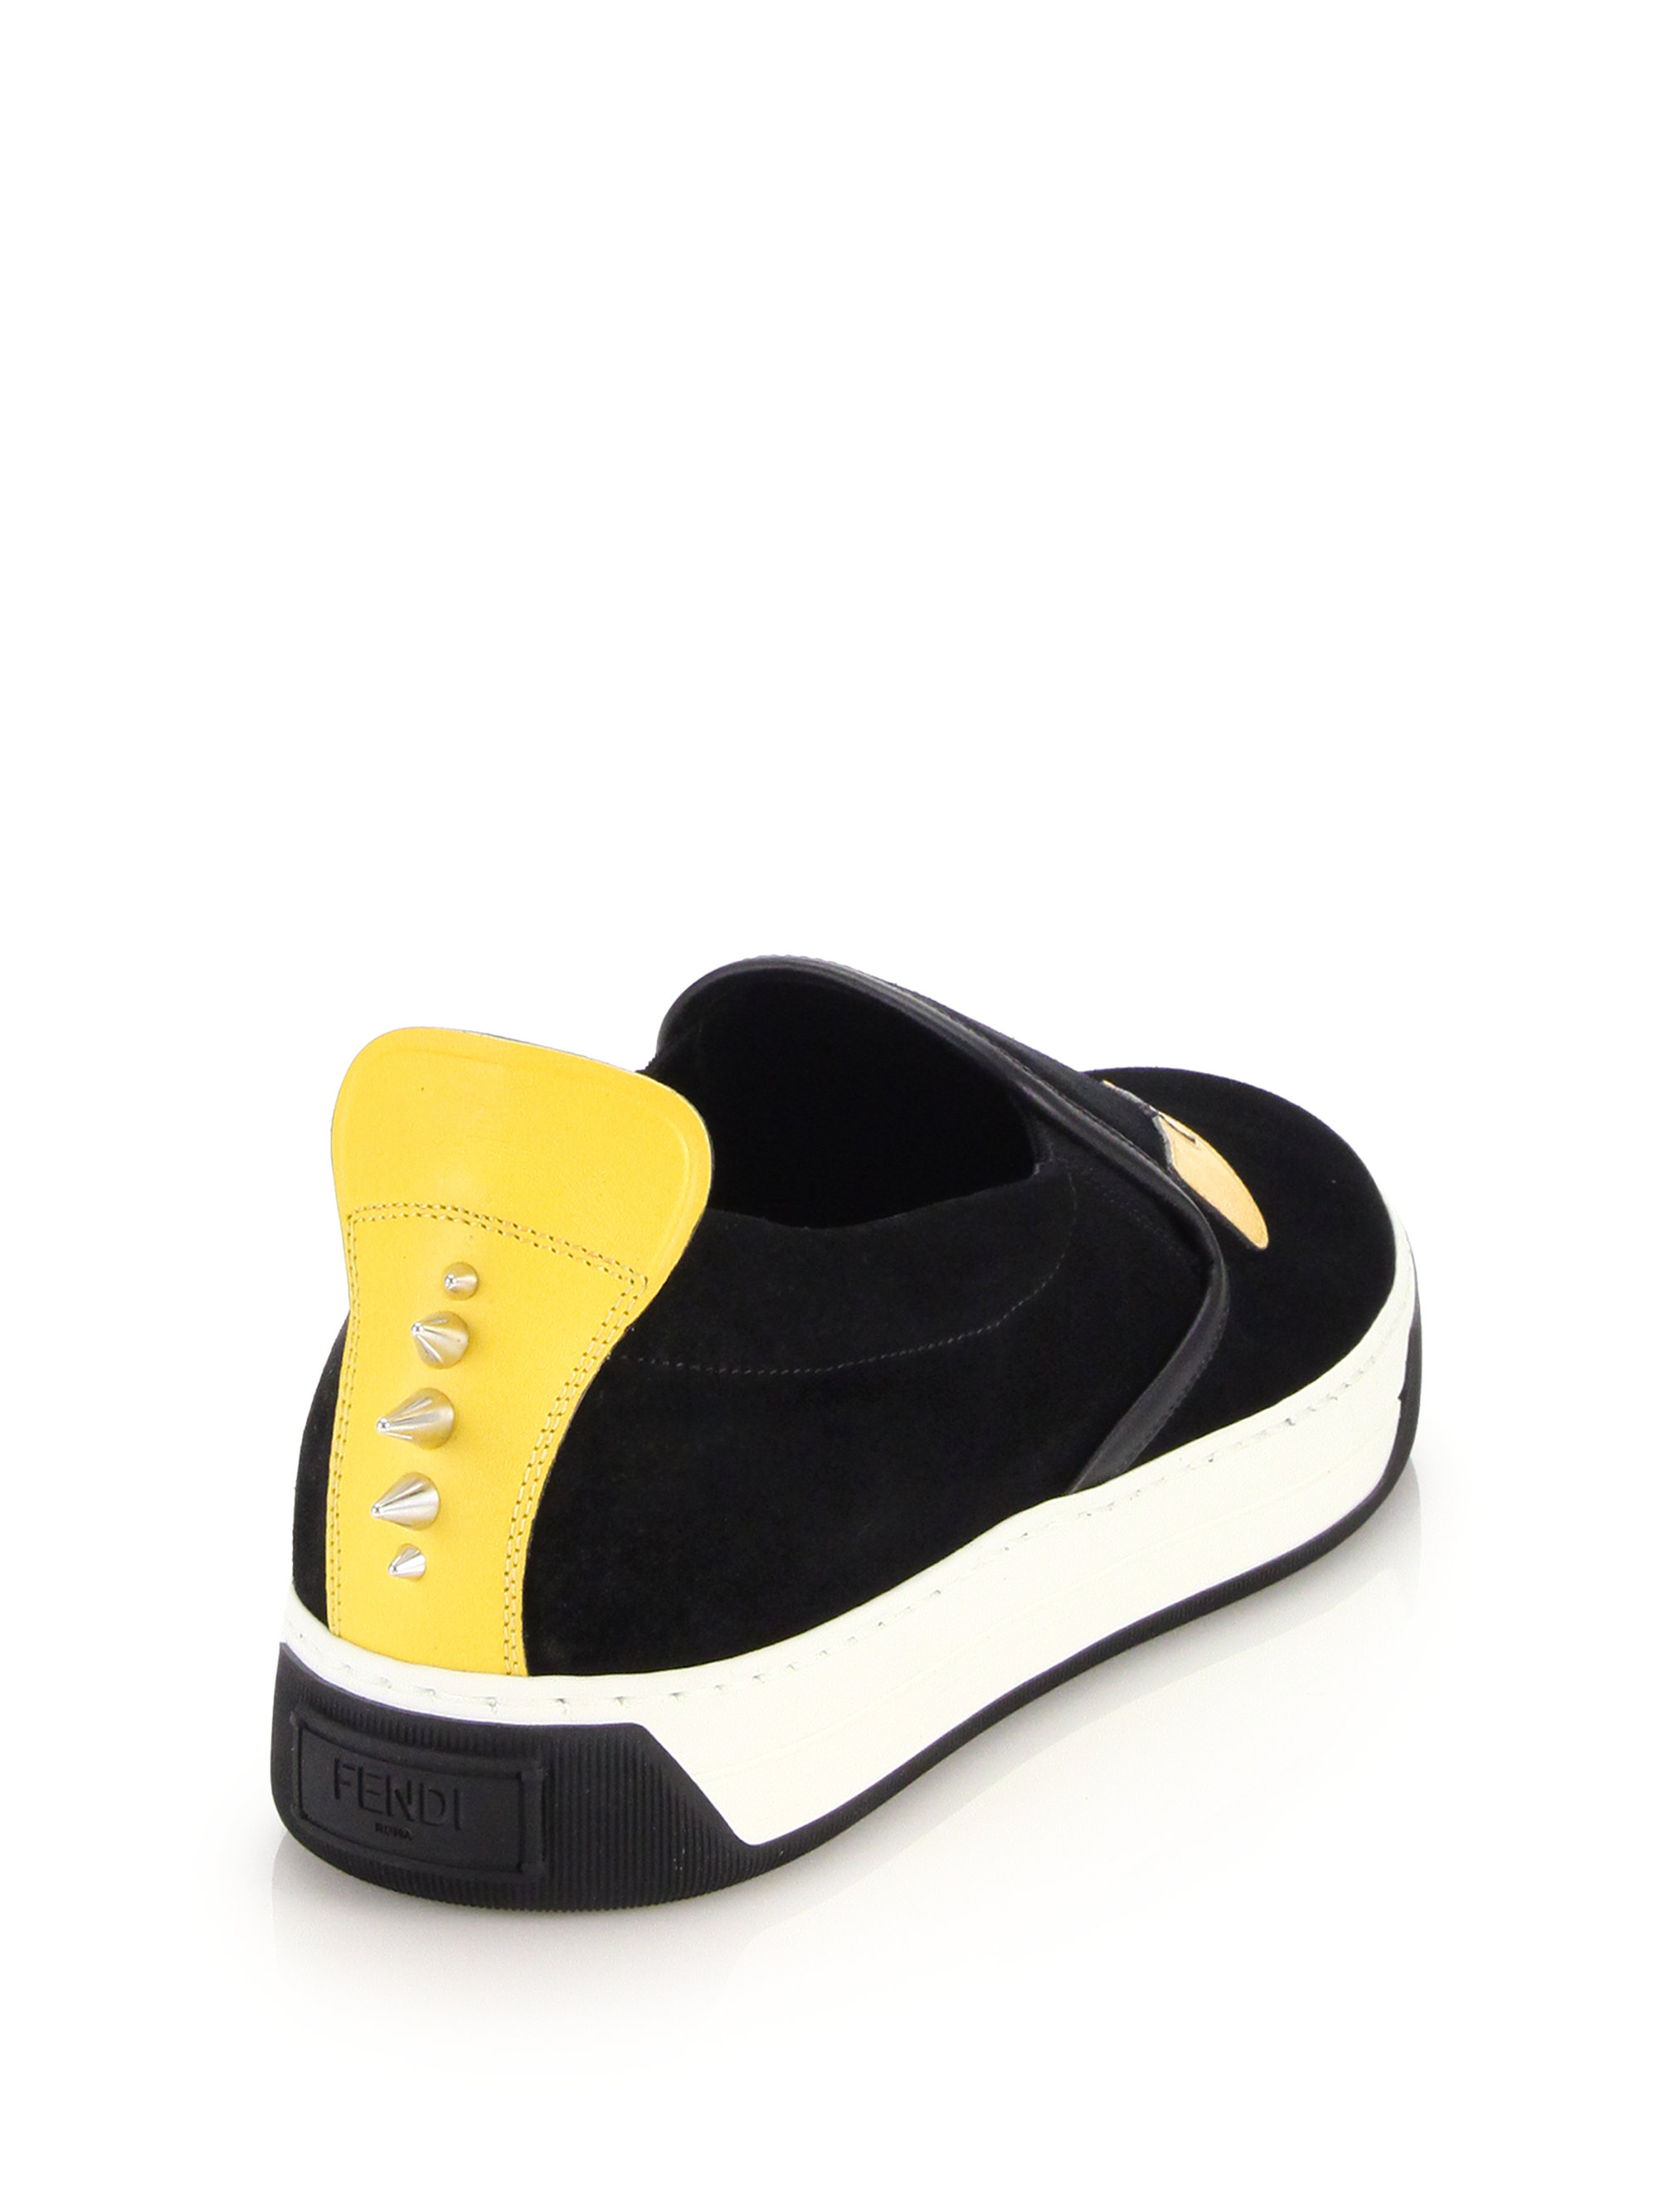 FendiMonster Colorblock Sneakers cMNbpLp6